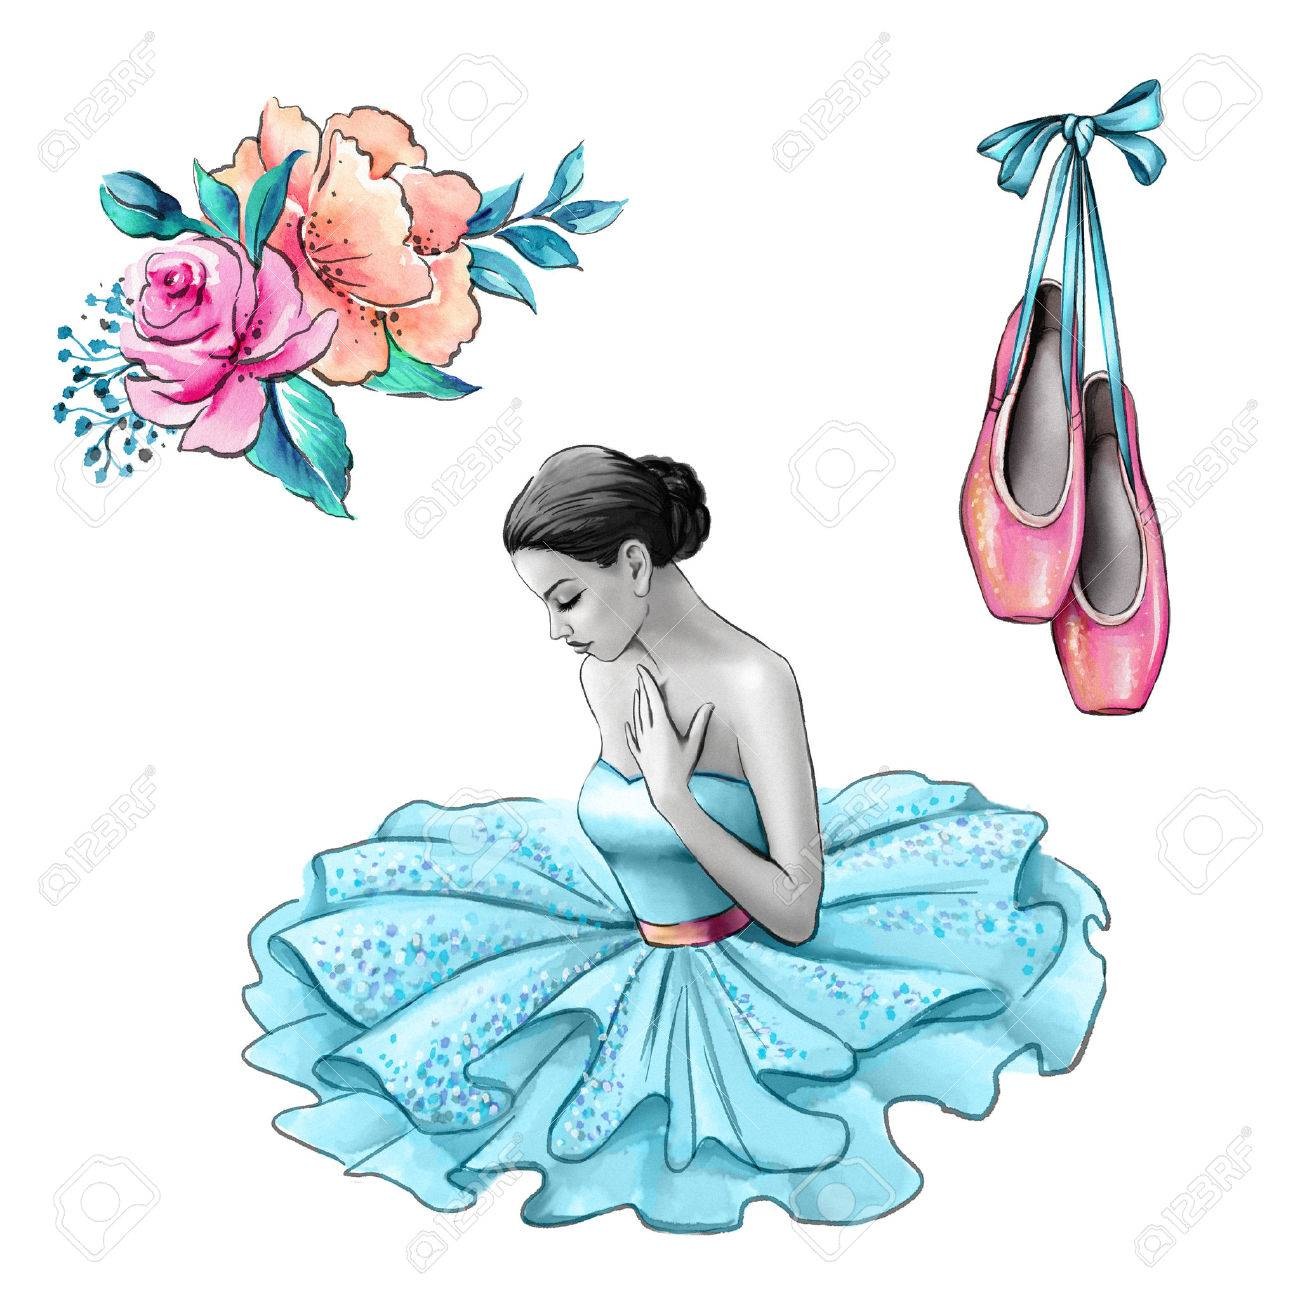 Watercolor Illustration Ballerina In Blue Dress Flowers Shoes